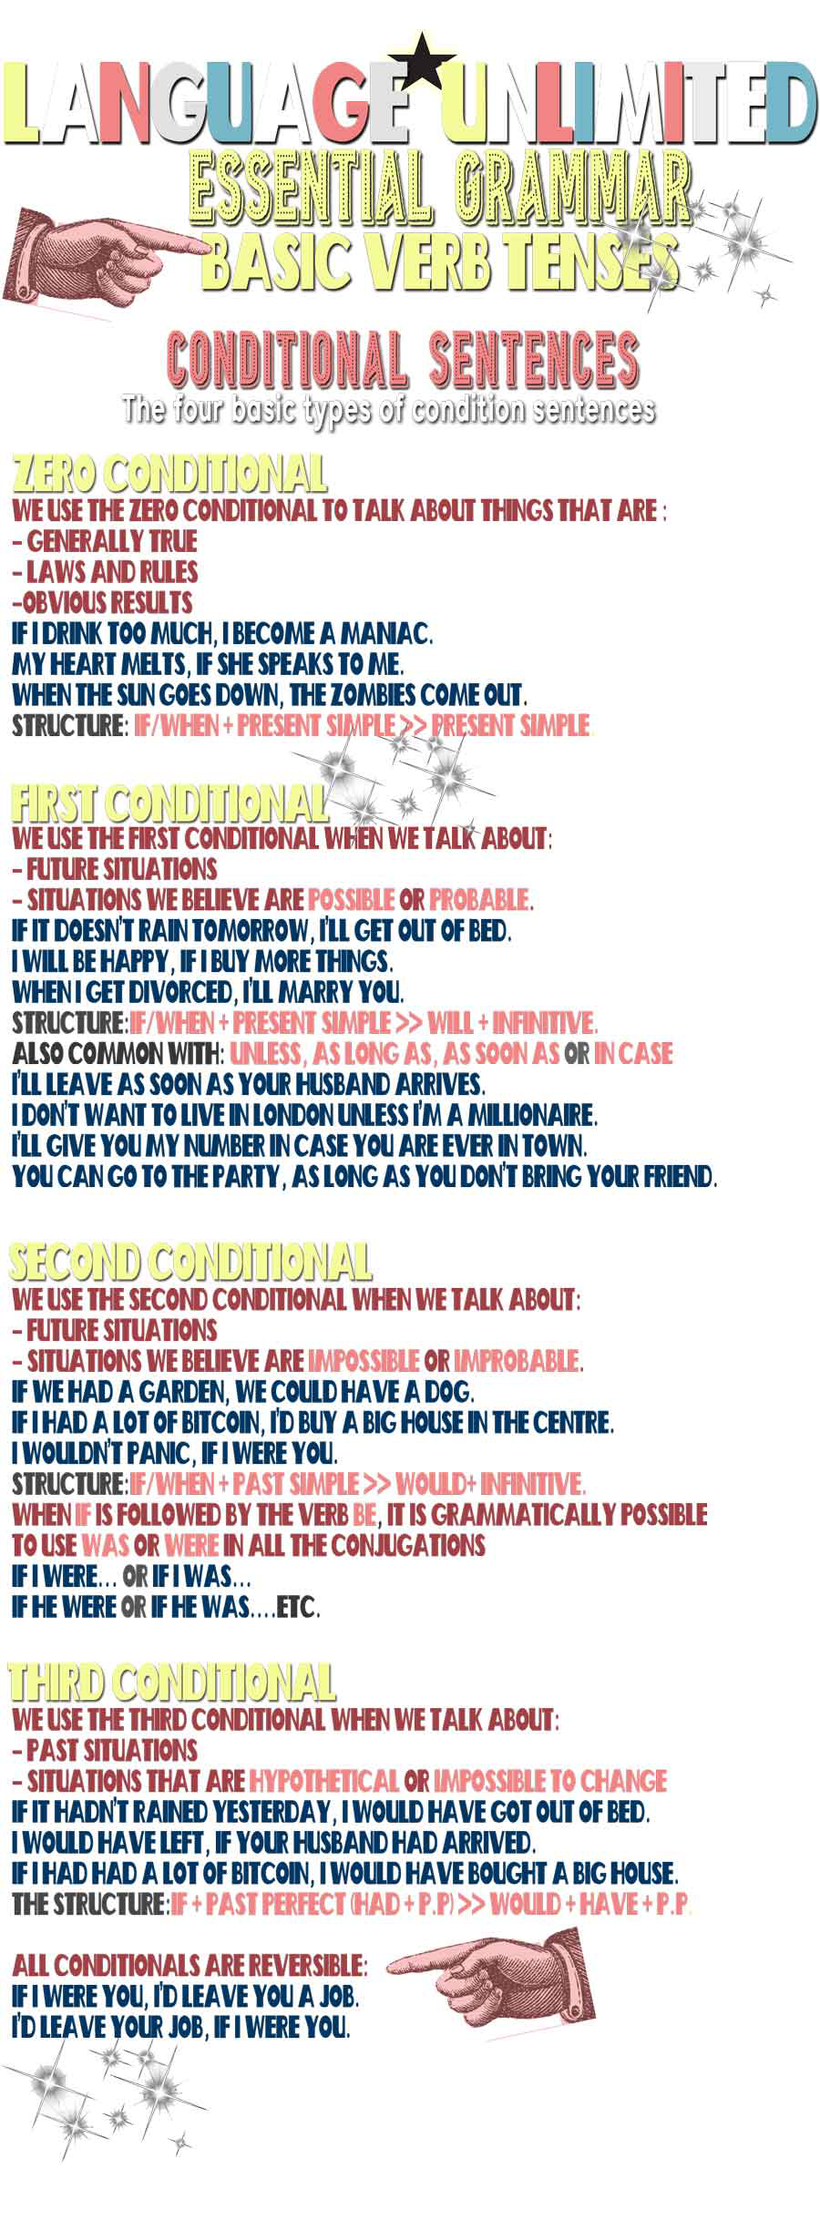 Essential English Grammar - Basic Verb Tenses graphic - Conditional sentence types - Infographic by Language Unlimited